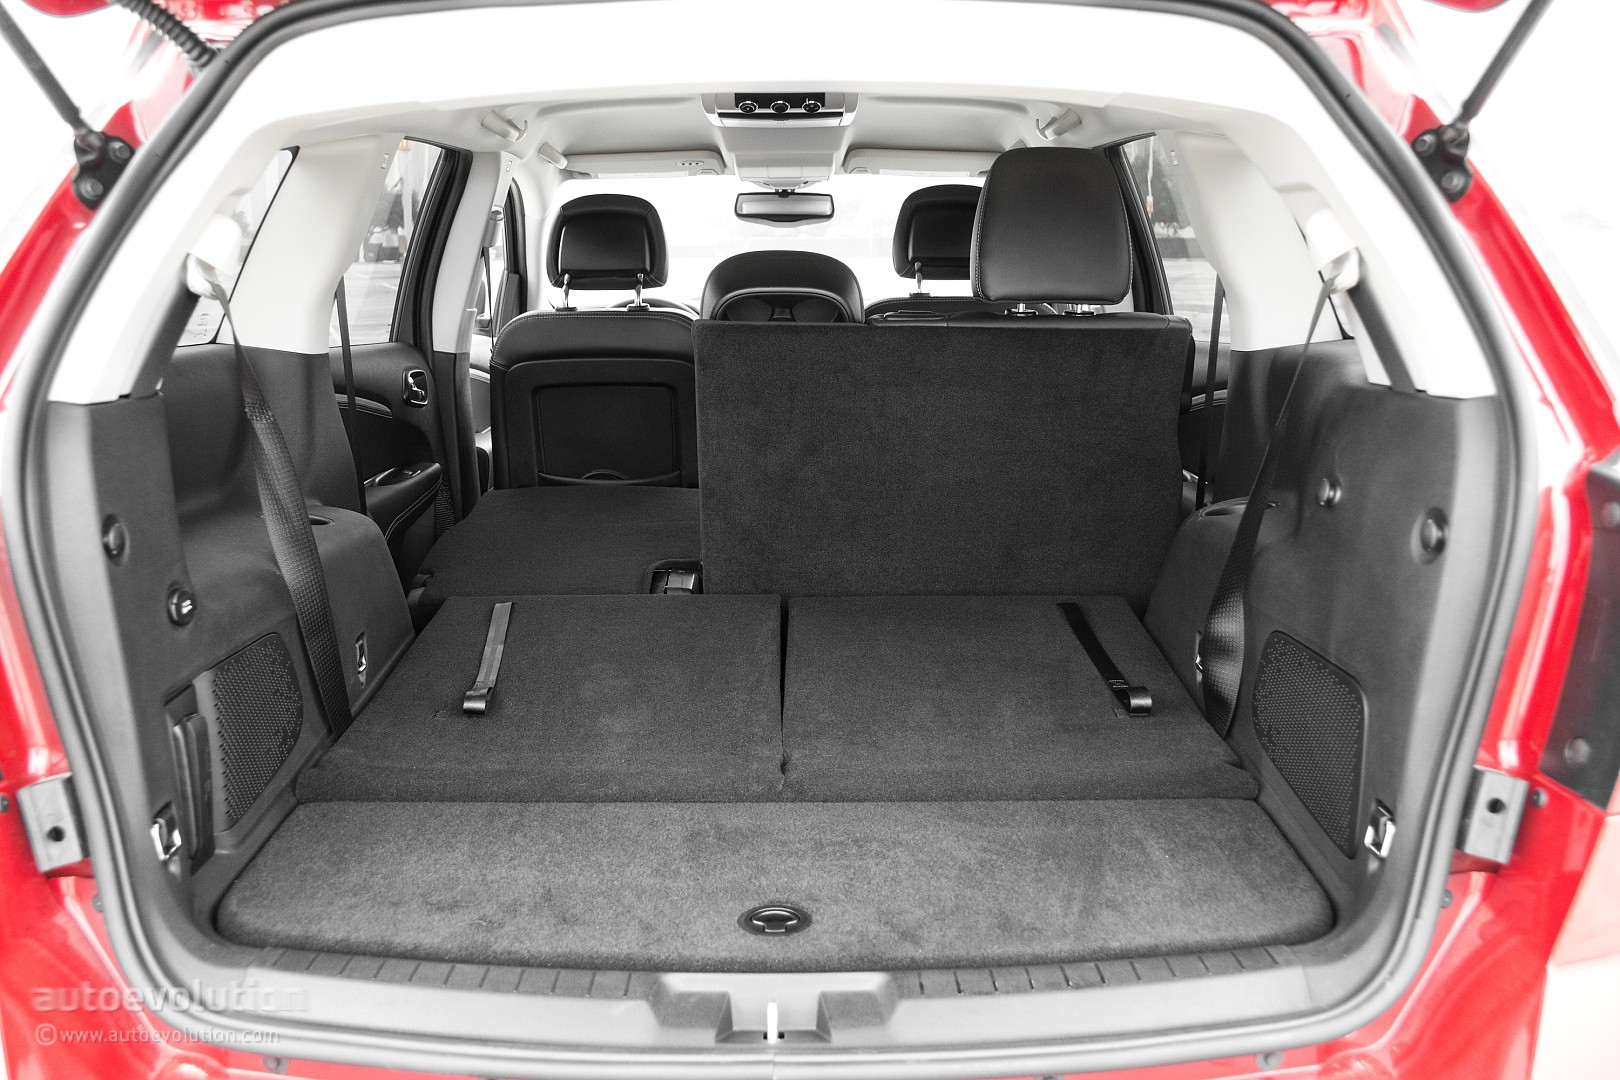 2017 Dodge Journey Interior Dimensions